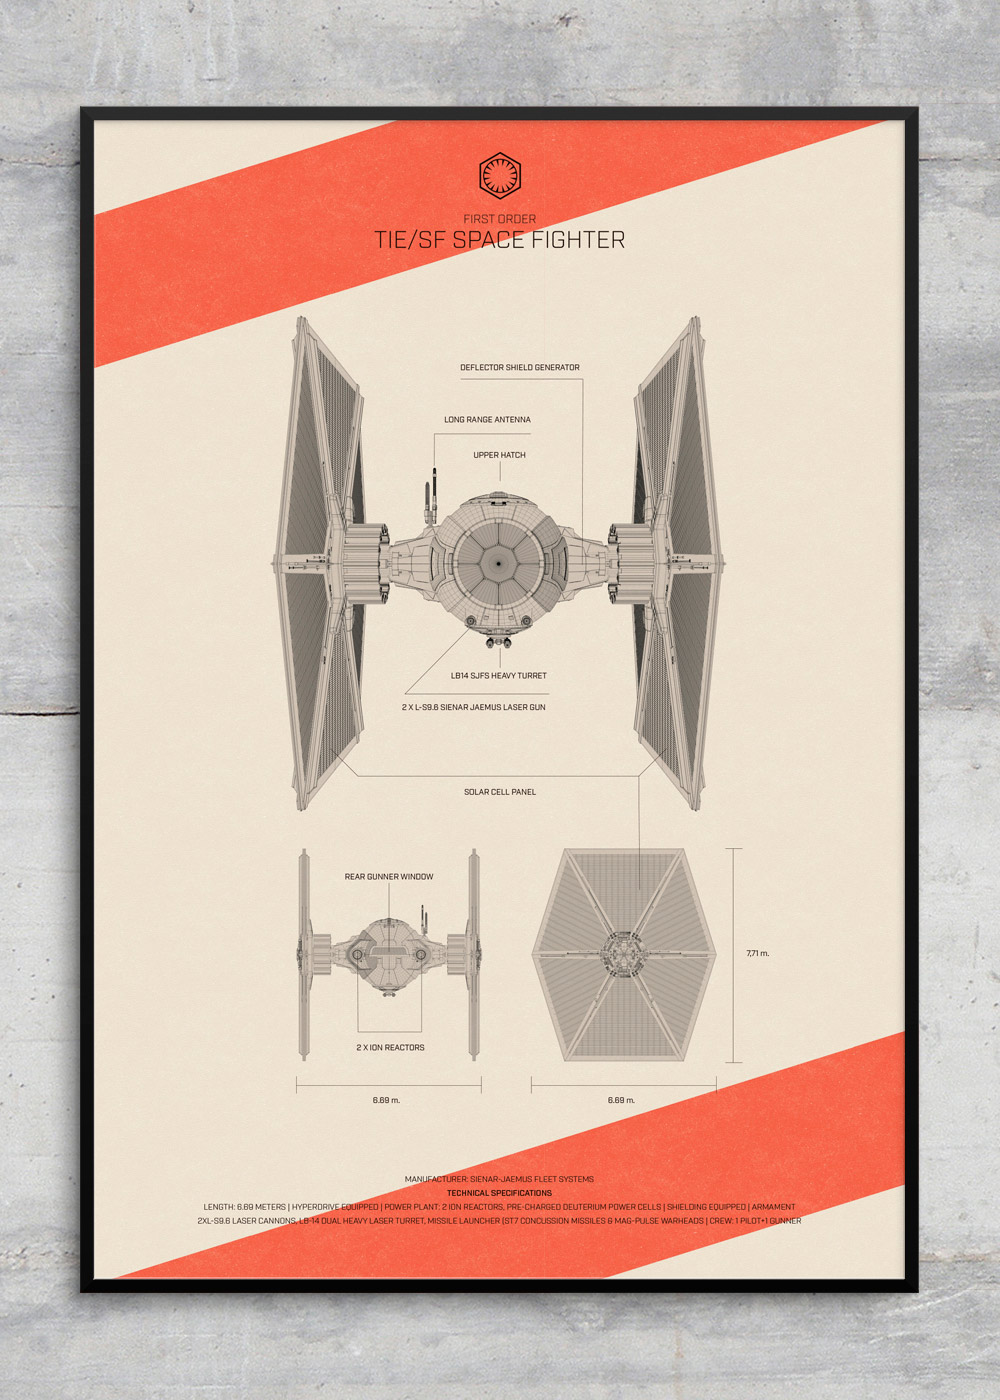 Star Wars The Force Awakens Special Edition poster 1